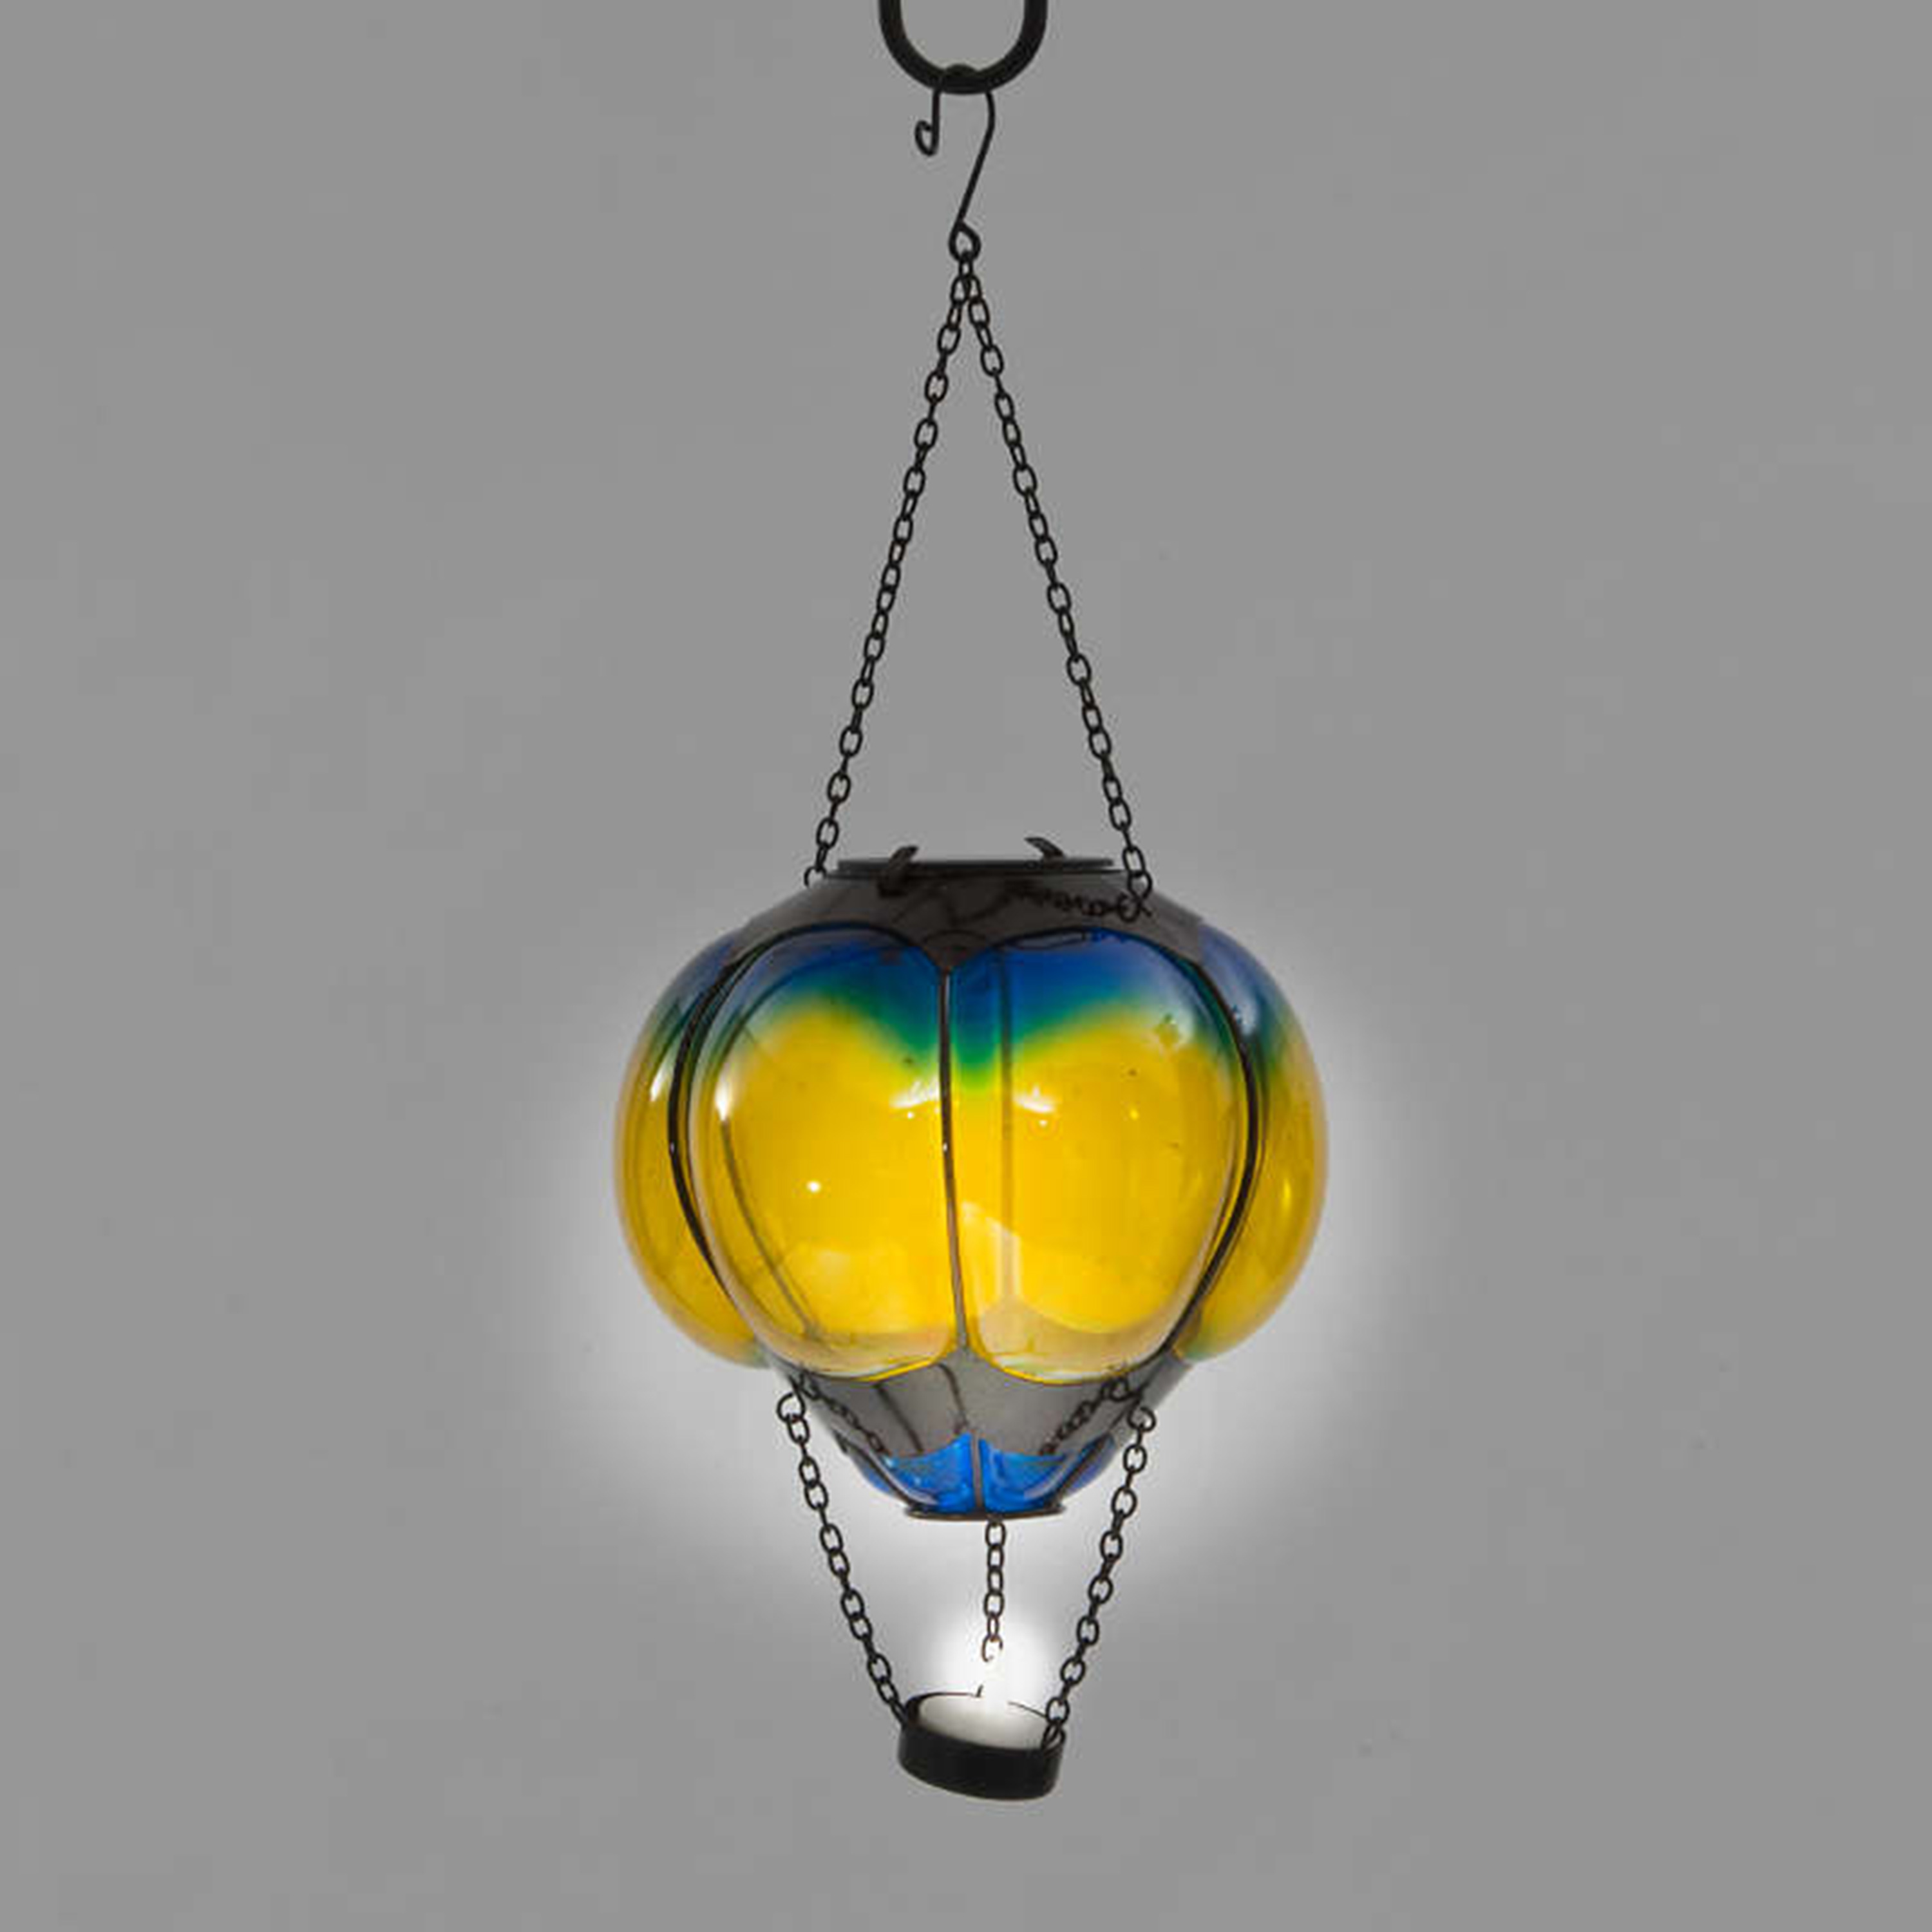 Gardens and Homes Direct Solar Balloon - Blue & Yellow